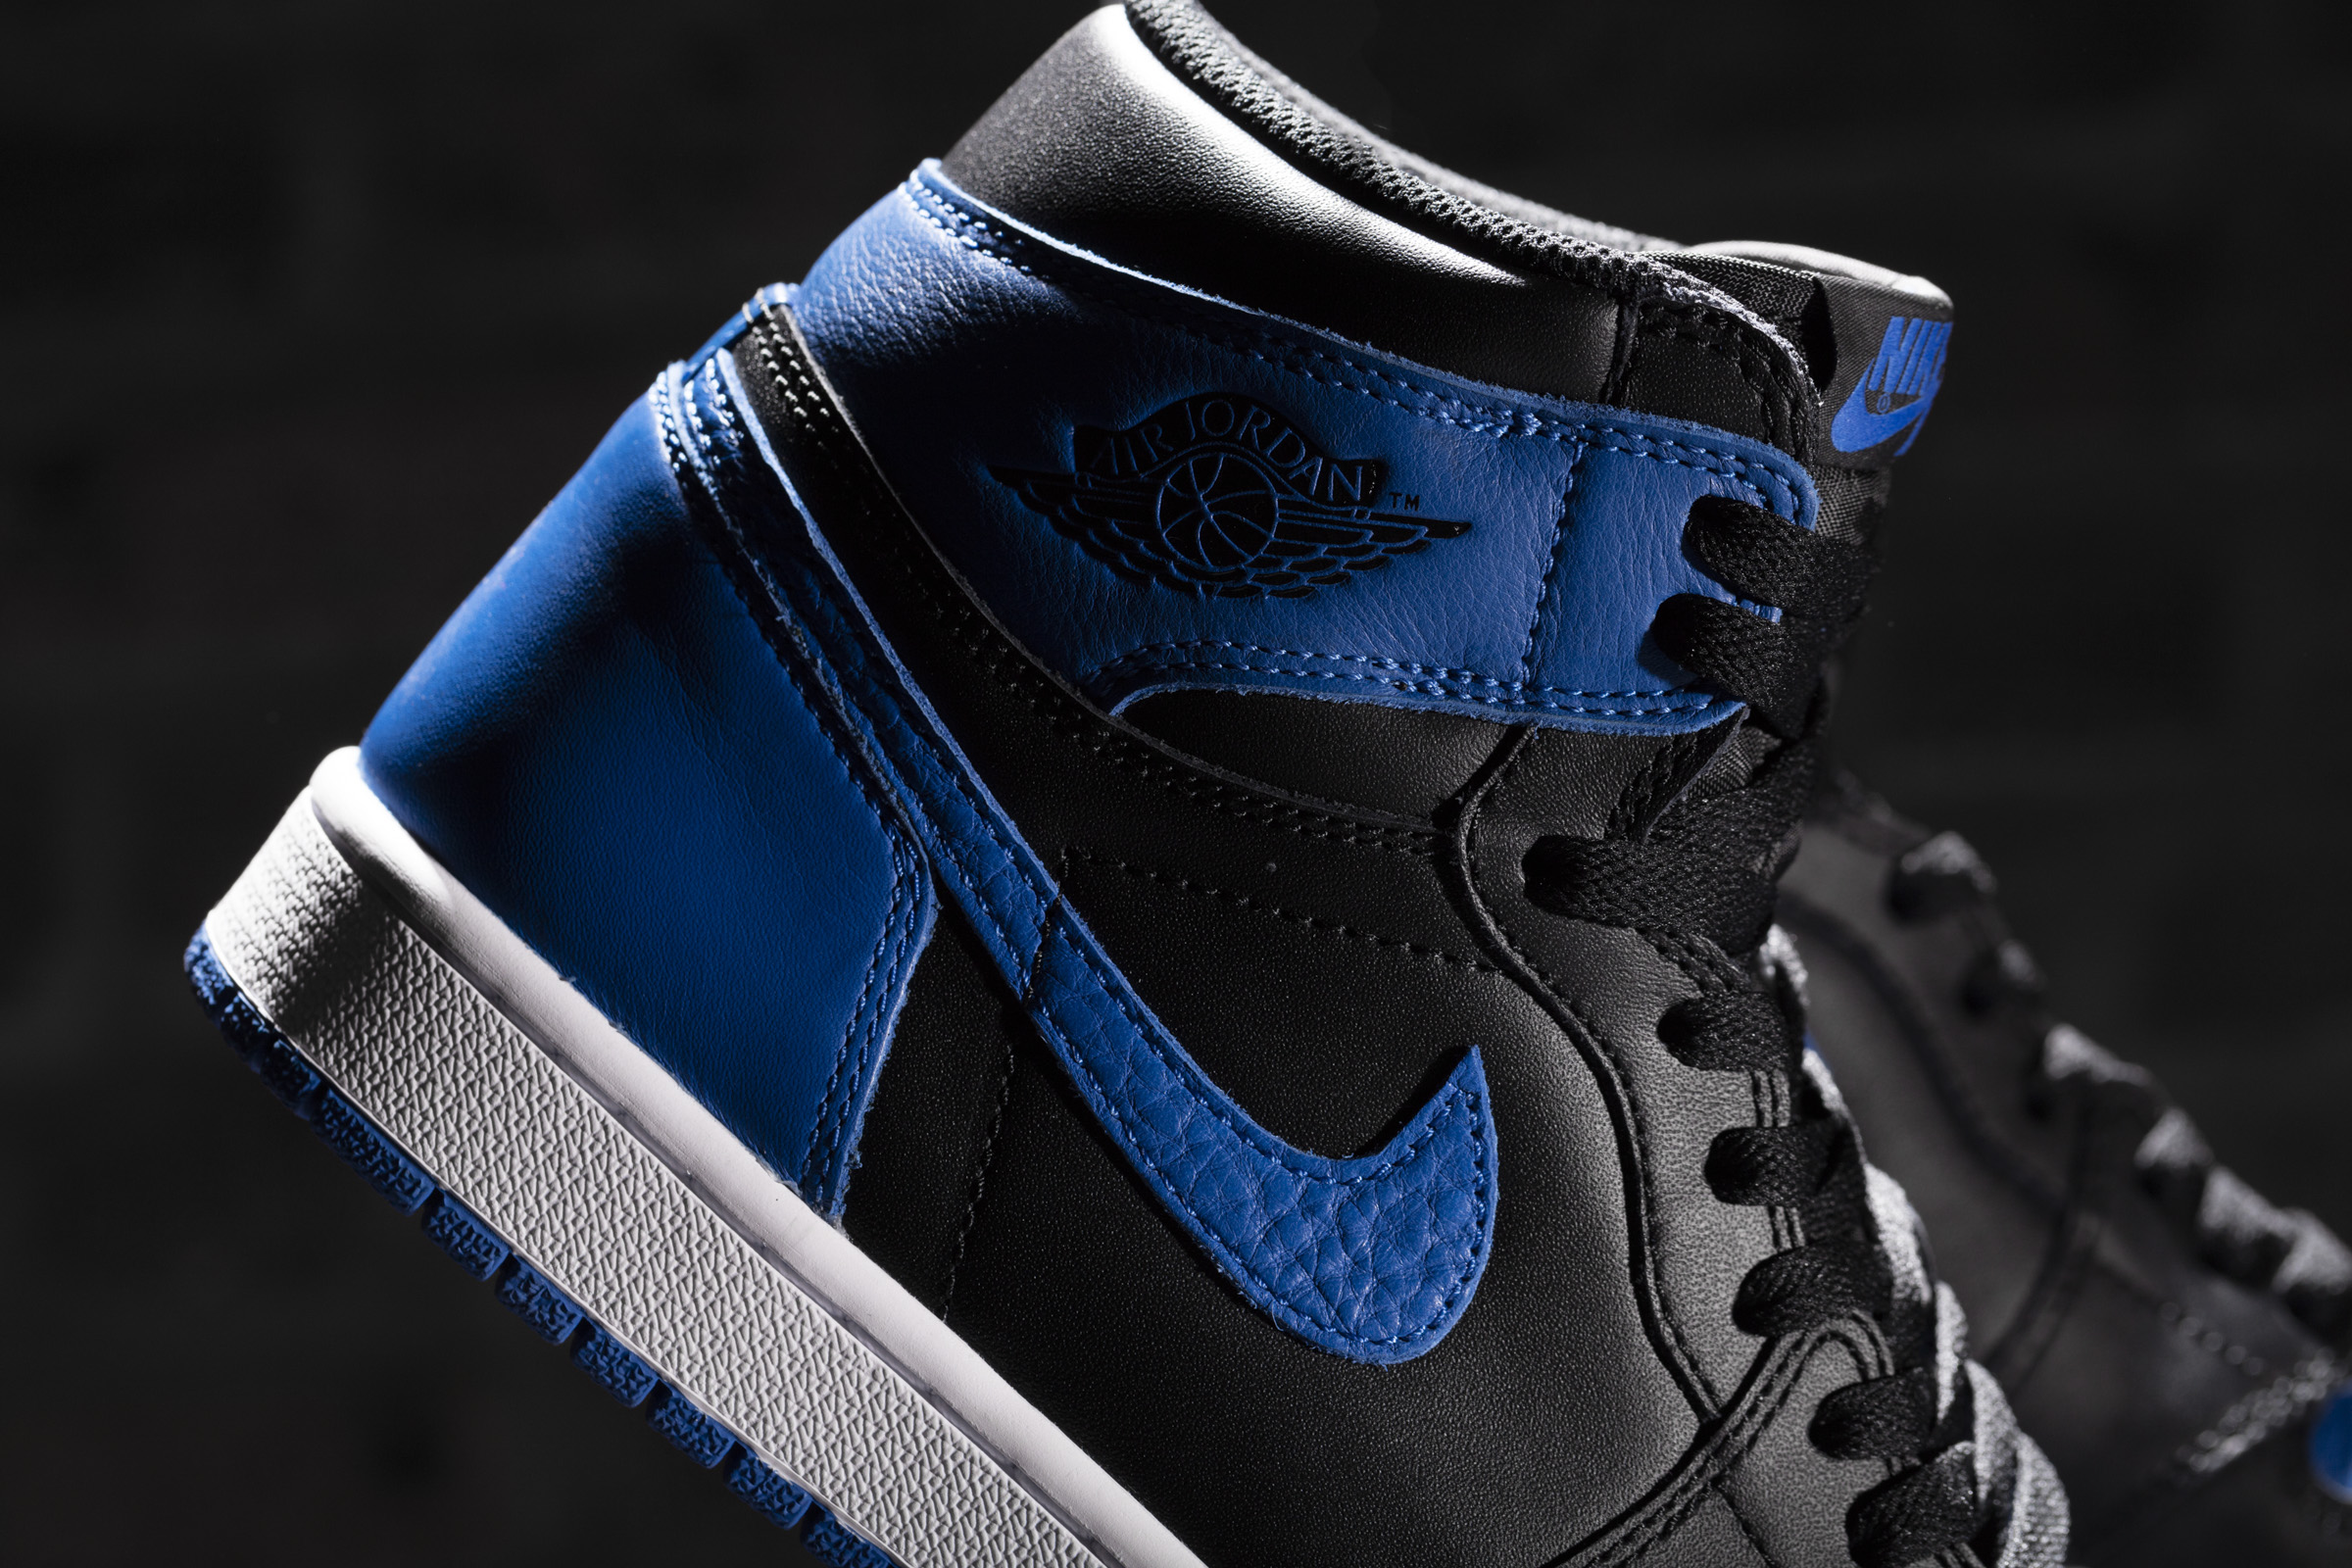 """fe1dadc2eb1 No matter how many times Air Jordan 1 Retro High OG """"Royal"""" releases, it's  always highly anticipated. The shoe's status as one of the original 1985 ..."""